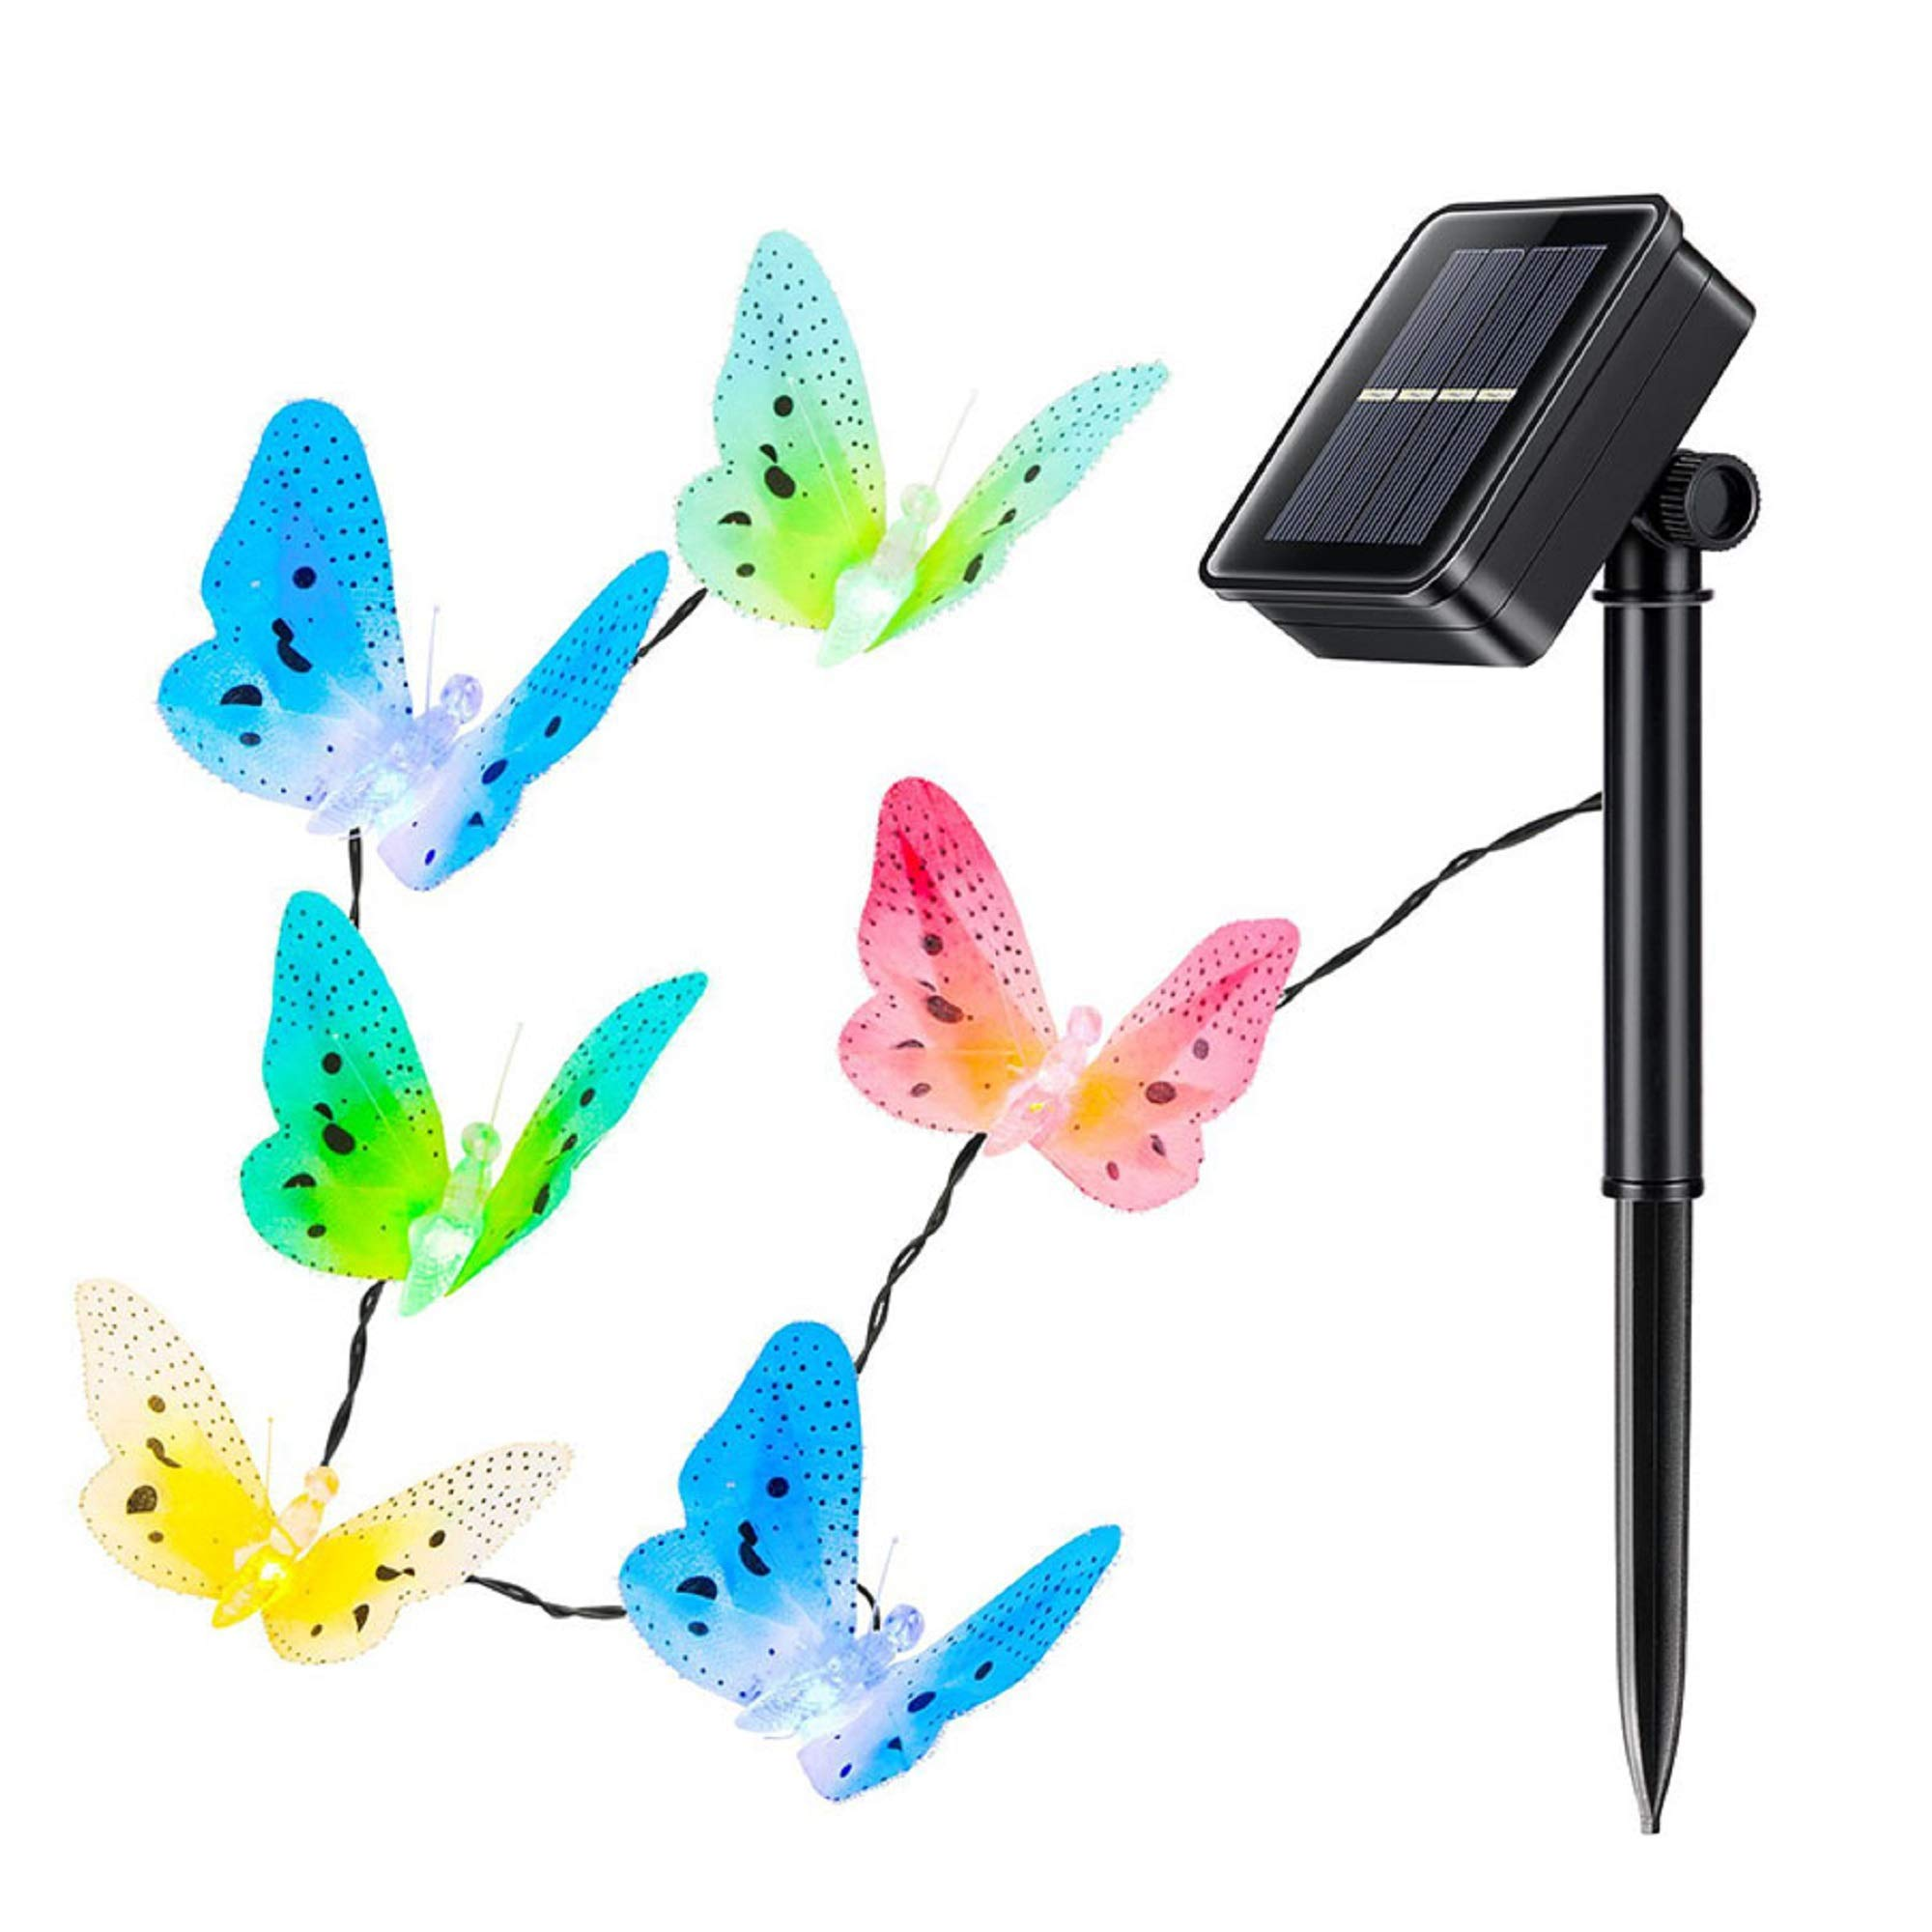 Buterfly Solar Lights Decor Outdoor Fairy Garden Plants Flowers Stake with 12 LED Colorful Deciration